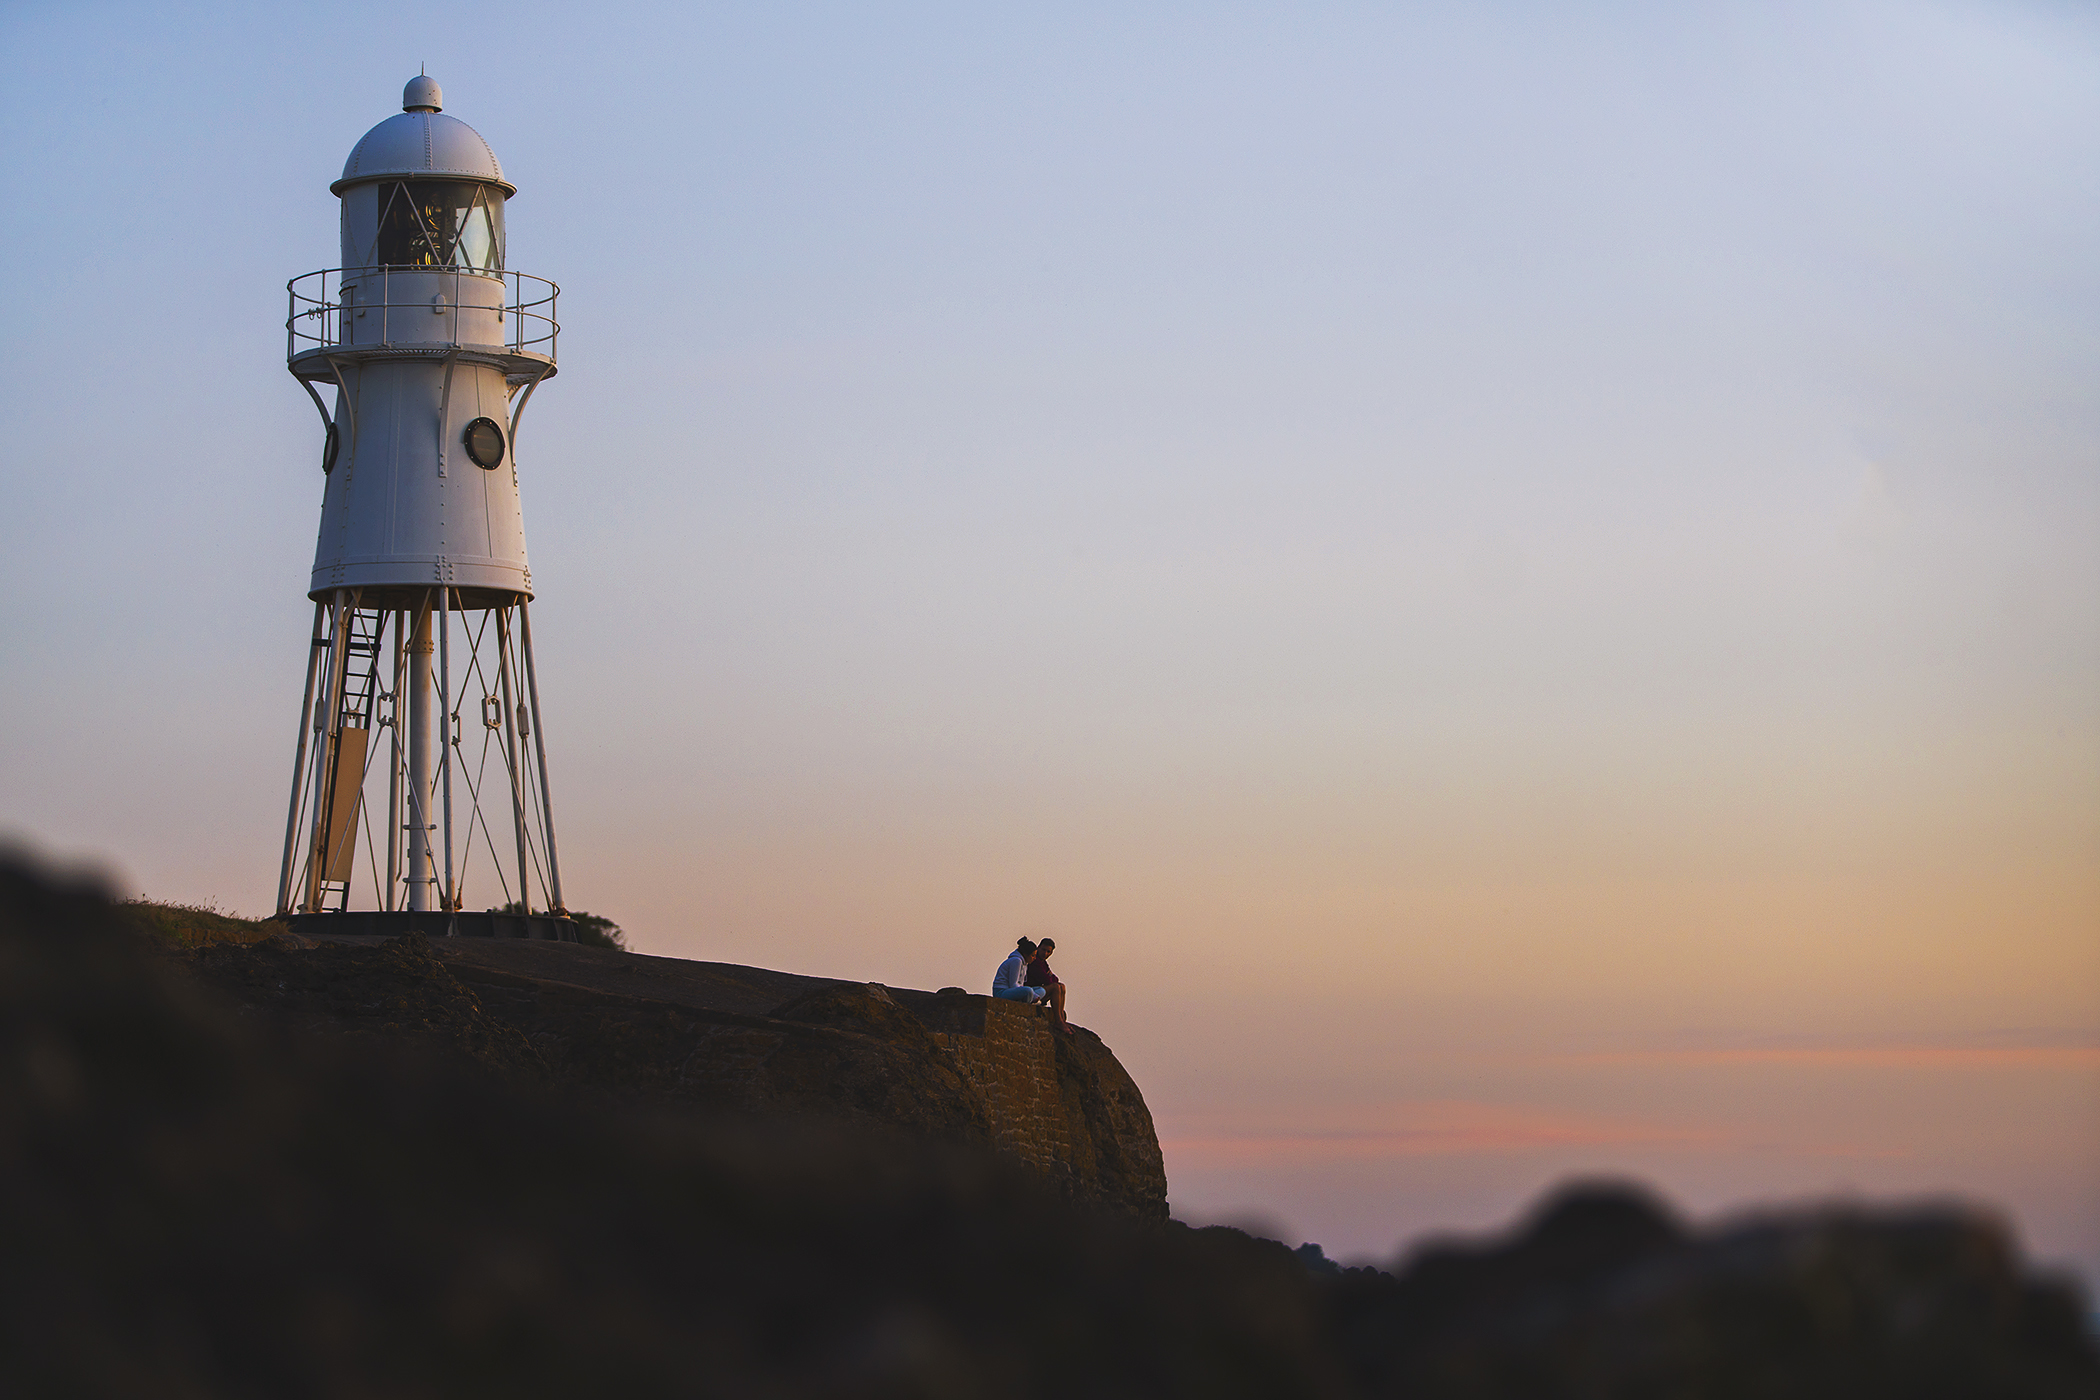 Black Nore lighthouse, Portishead. Photo by Adam Gasson / adamgasson.com